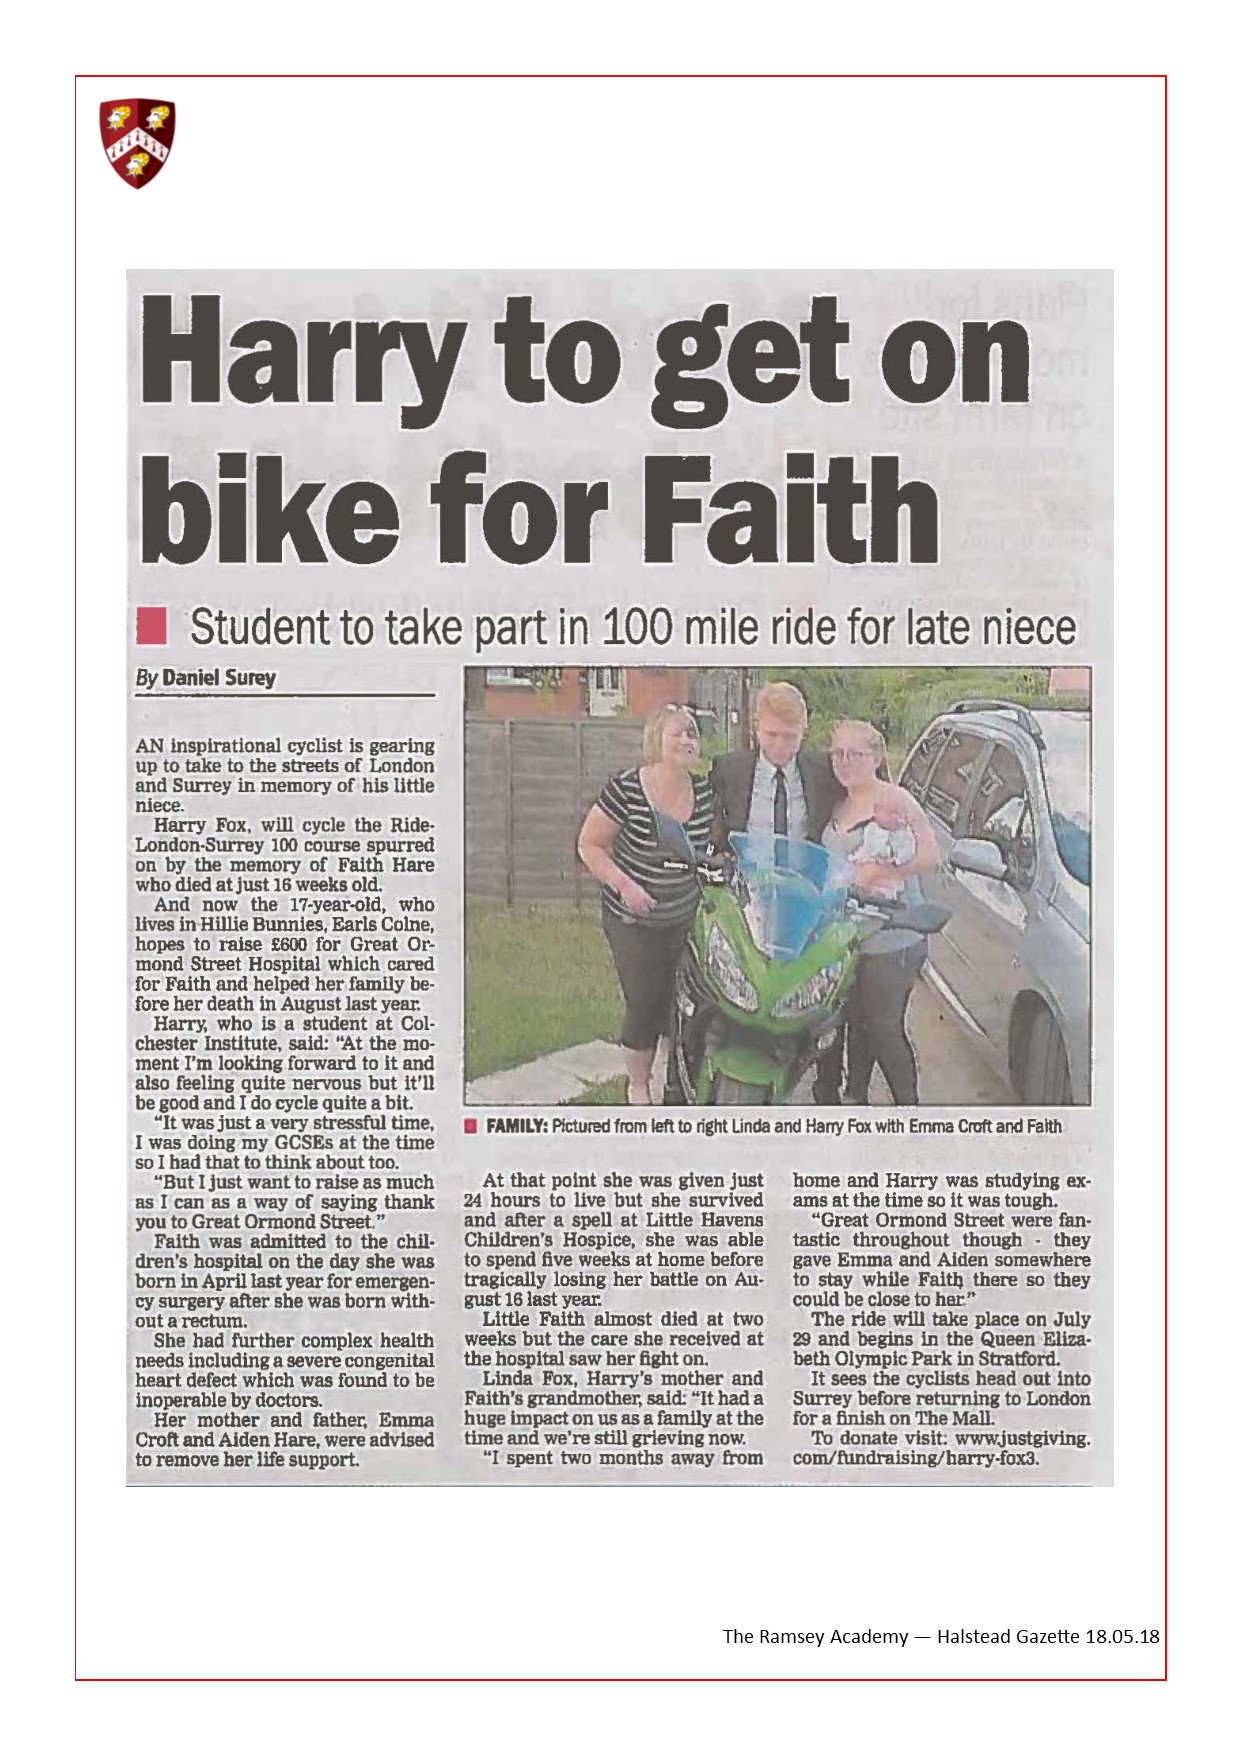 Harry To Get On Bike For Faith 18.05.18